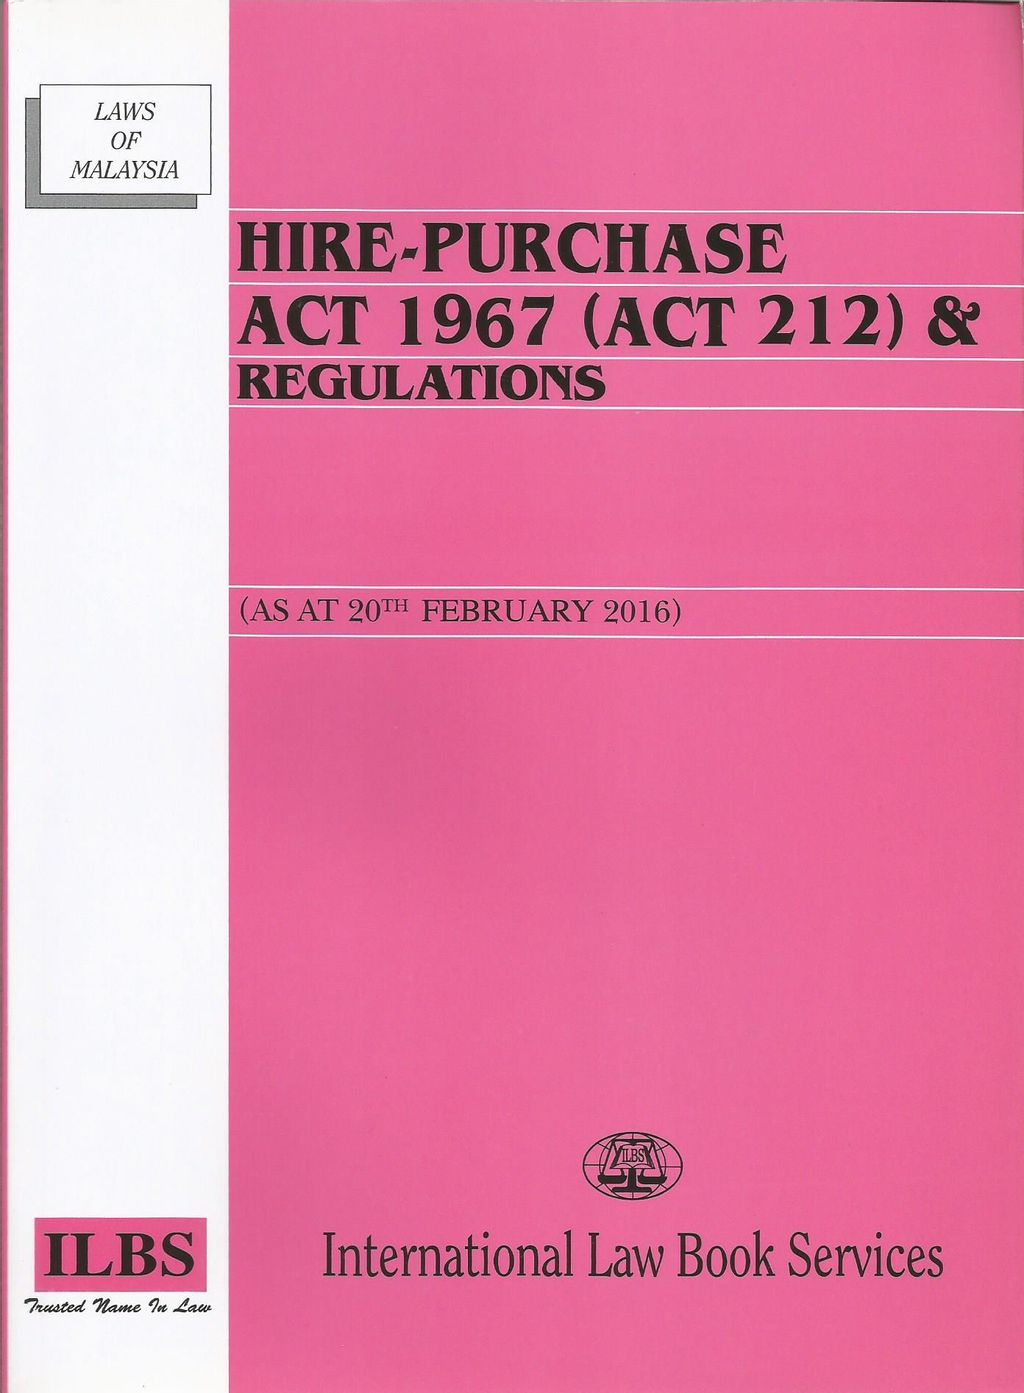 hire purchase act rm17.5 0.180001.jpg